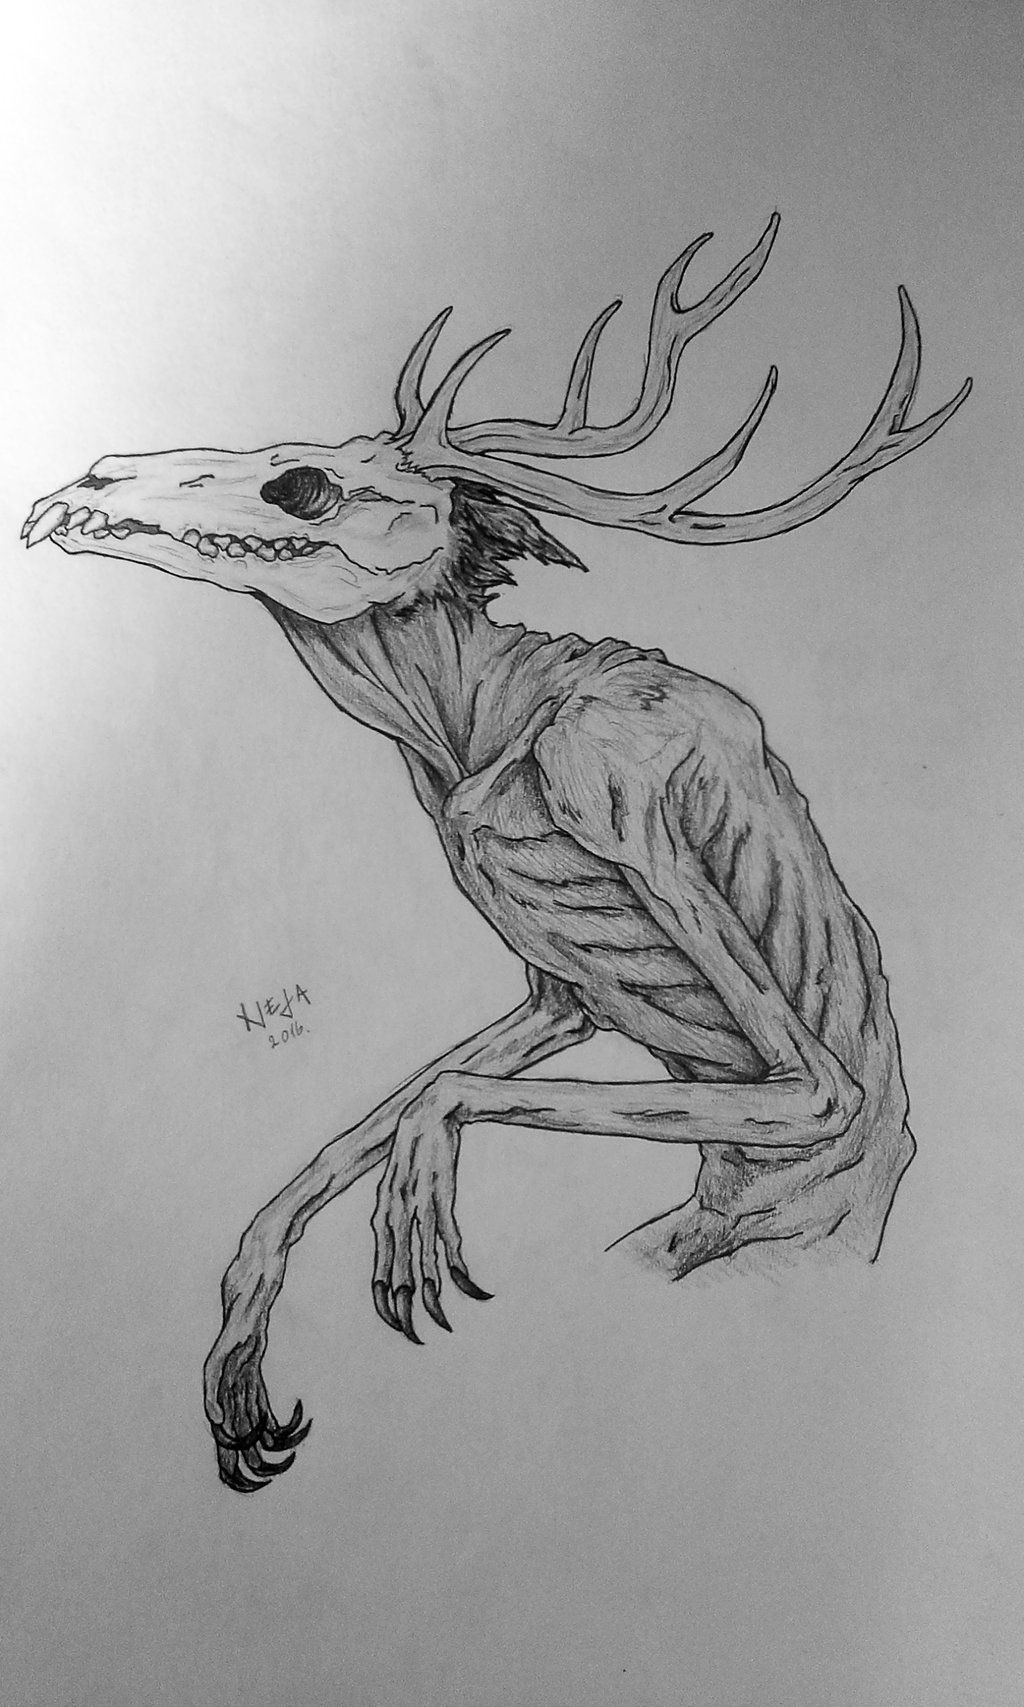 Wendigo by moony bunny scull drawing ghost drawing alien drawings easy drawings